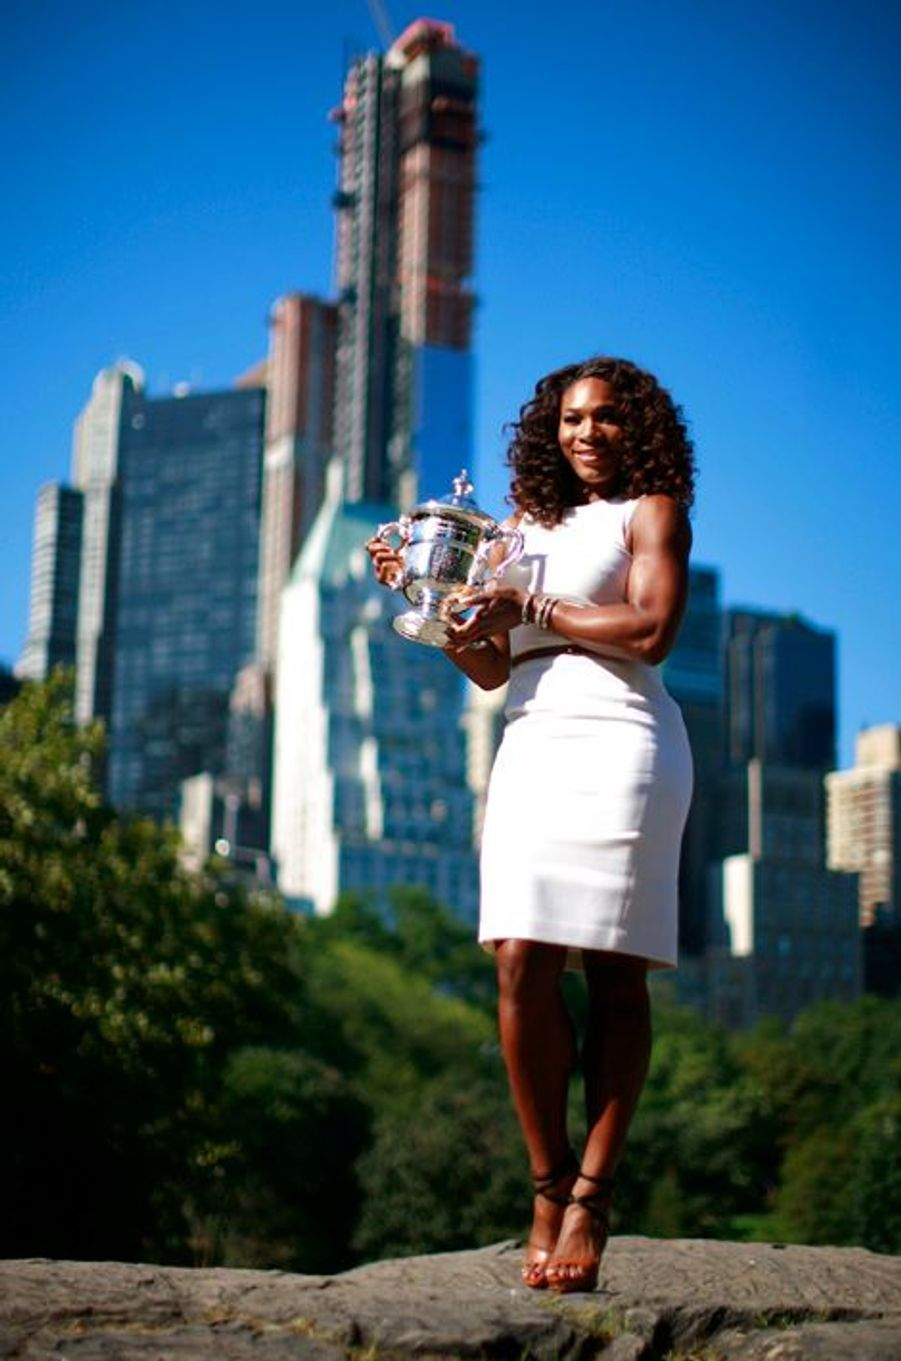 Pour l'instant, Serena Williams a remporté 36 tournois du Grand Chelem.